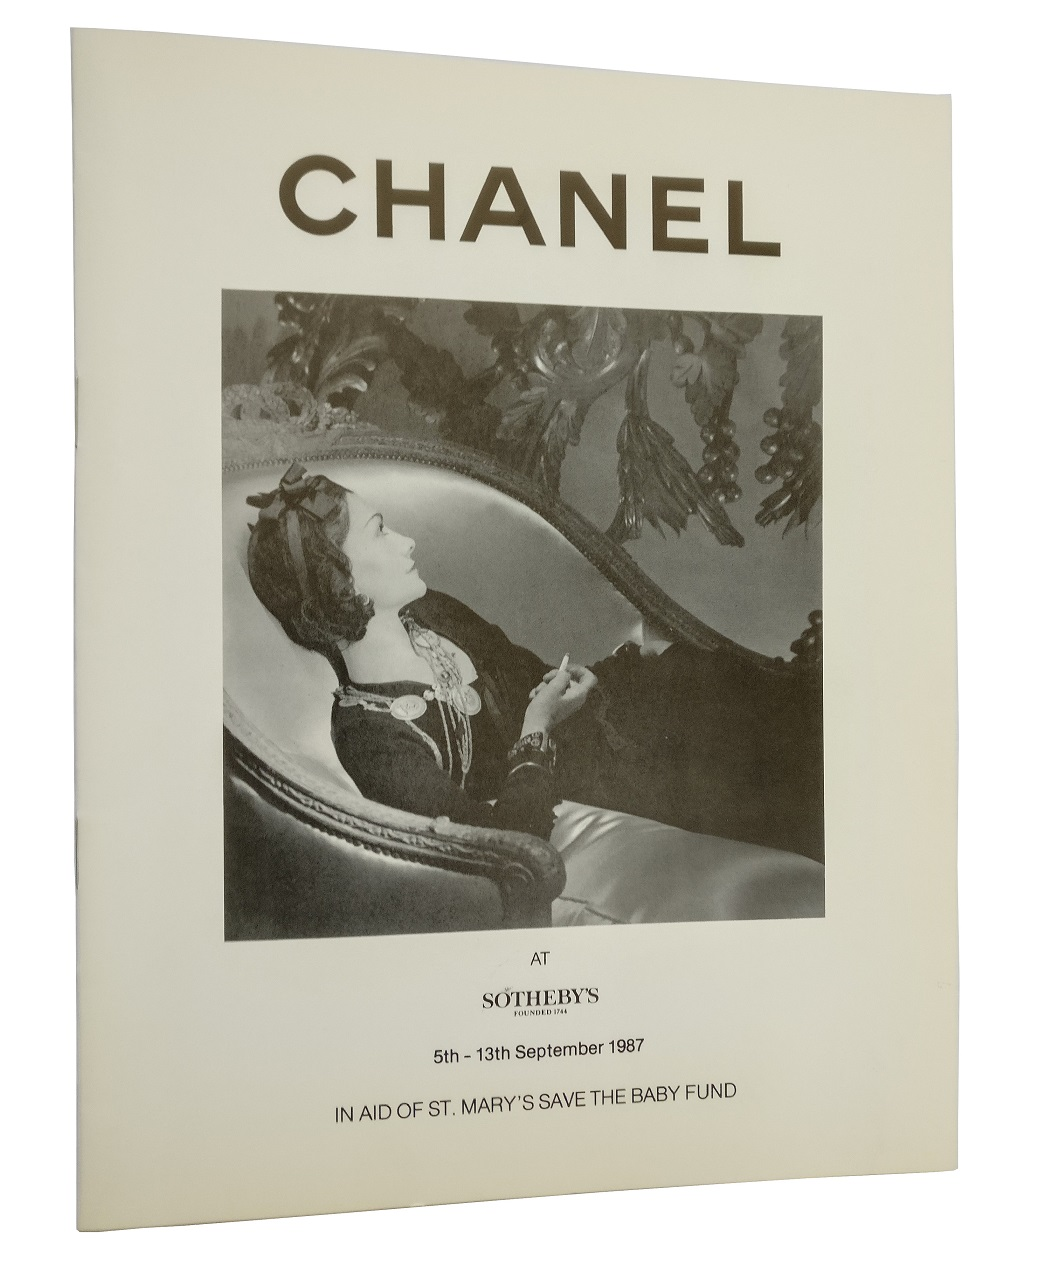 Chanel at Sotheby's in aid of St. Mary's Save the Baby Fund